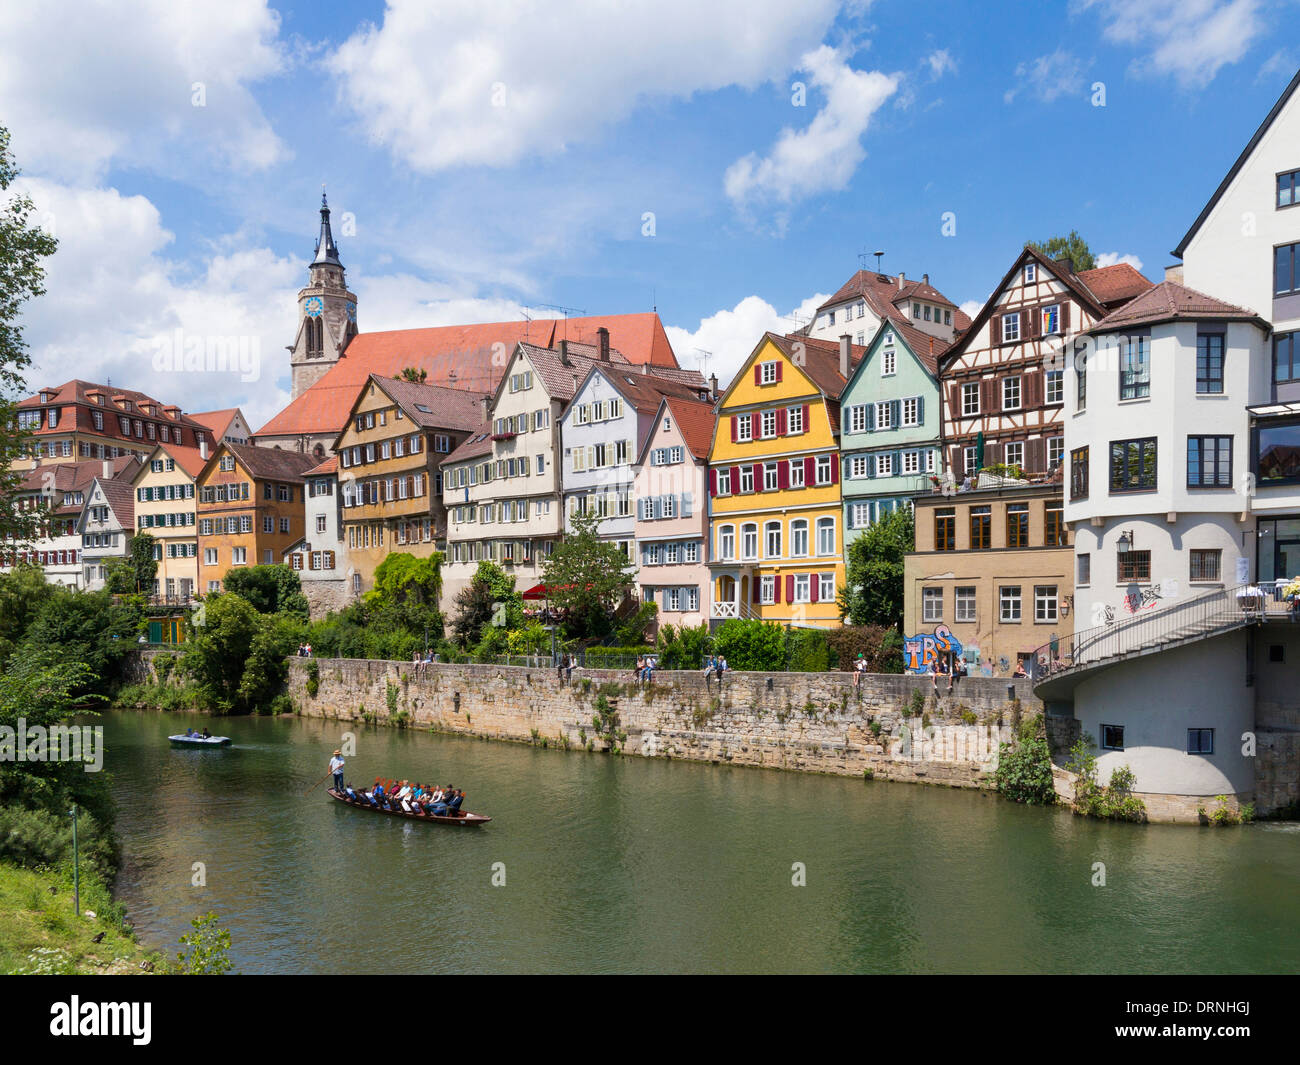 germany tubingen an old town on the river neckar stock photo 66242978 alamy. Black Bedroom Furniture Sets. Home Design Ideas